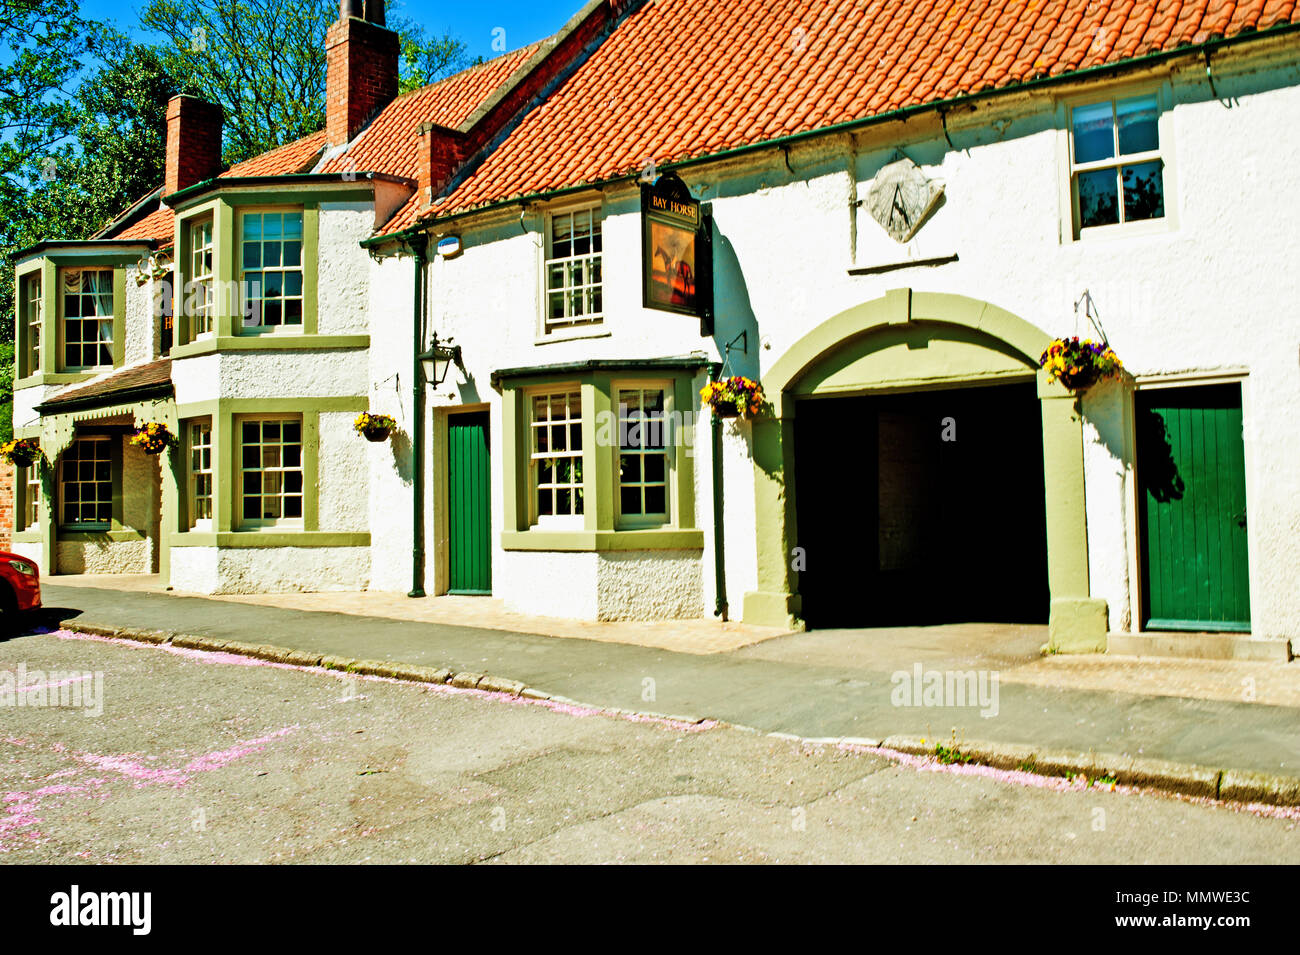 The Bay Horse, Hurworth on Tees, Darlington, County Durham - Stock Image